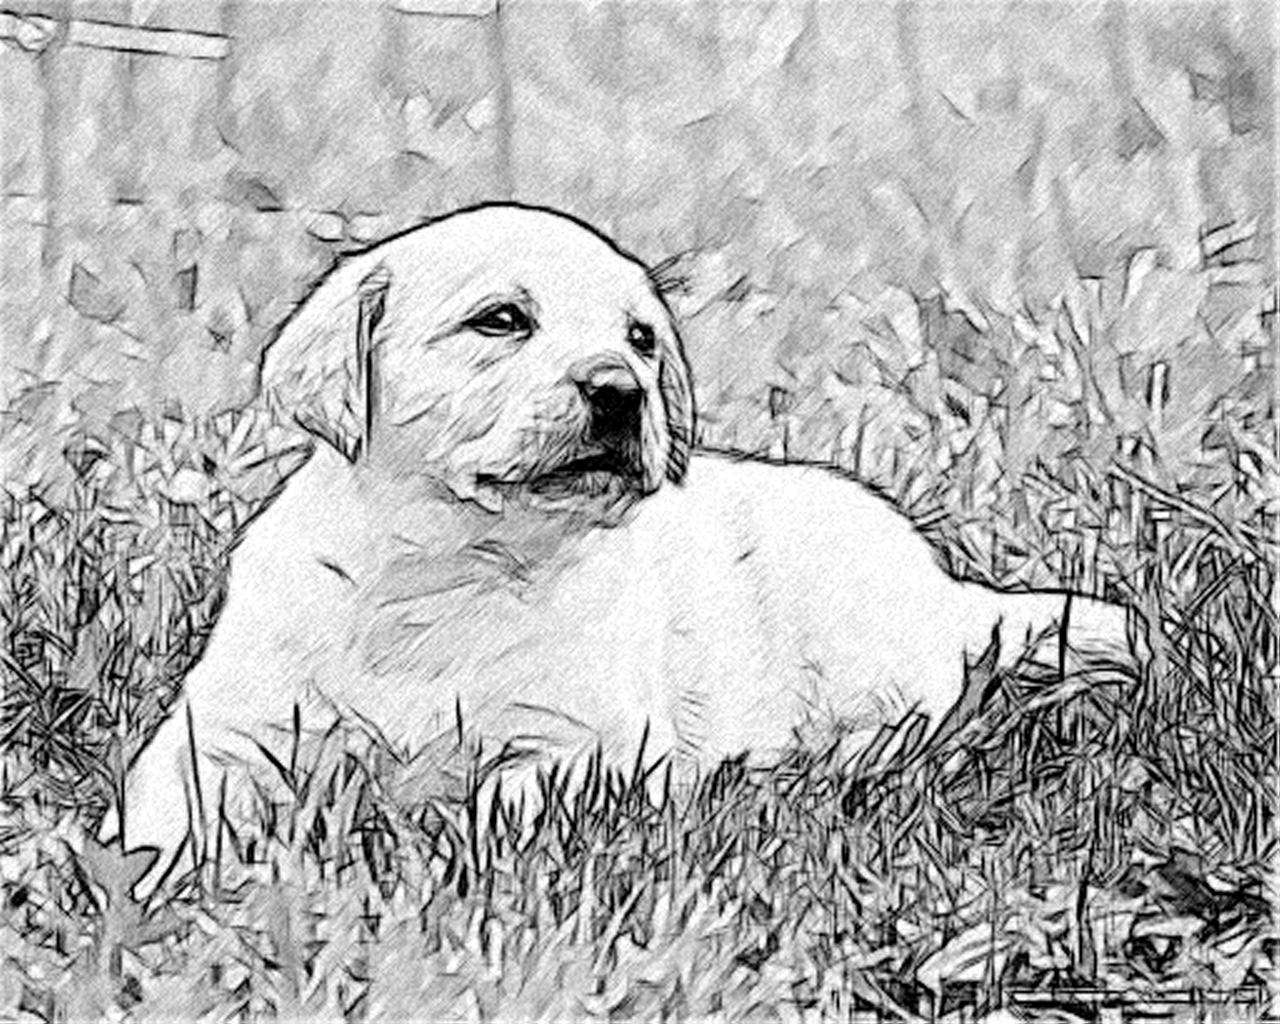 Labrador Puppy Drawing Posted by Sunny at 2:22 am